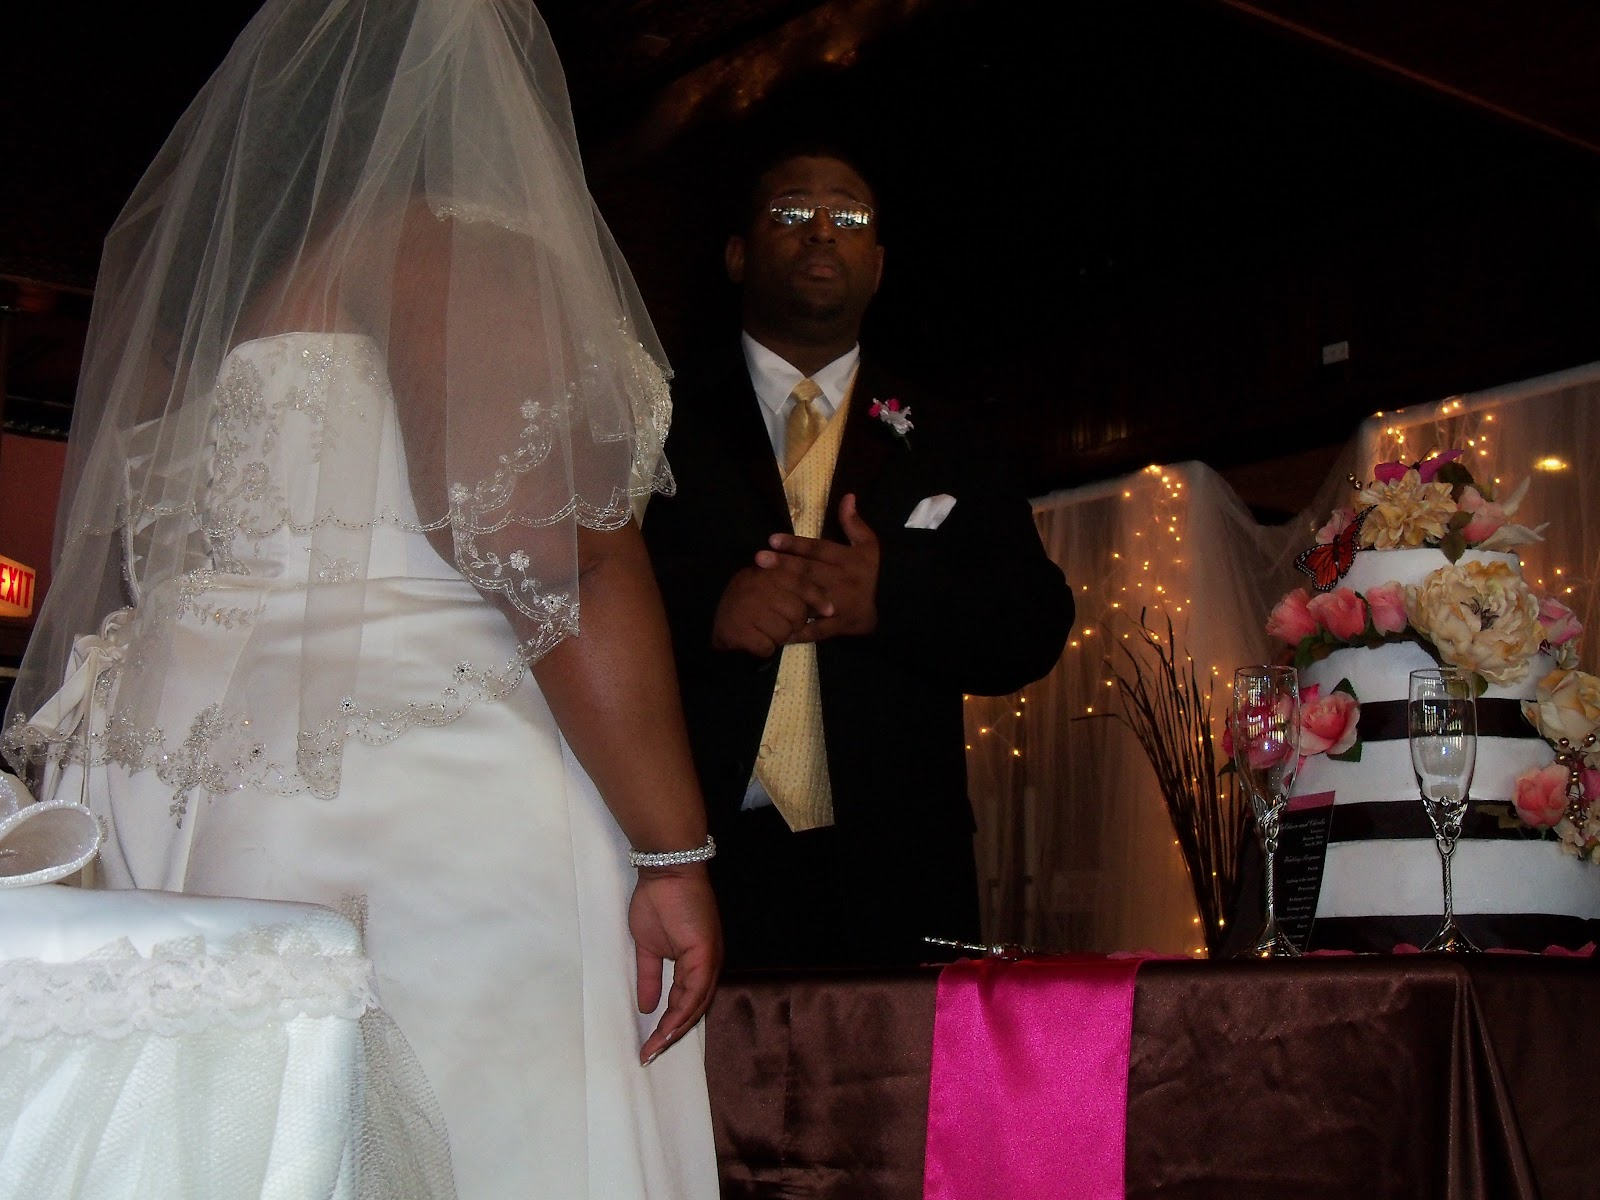 MeChaia Lunn and Clyde Longs wedding - 101_4654.JPG